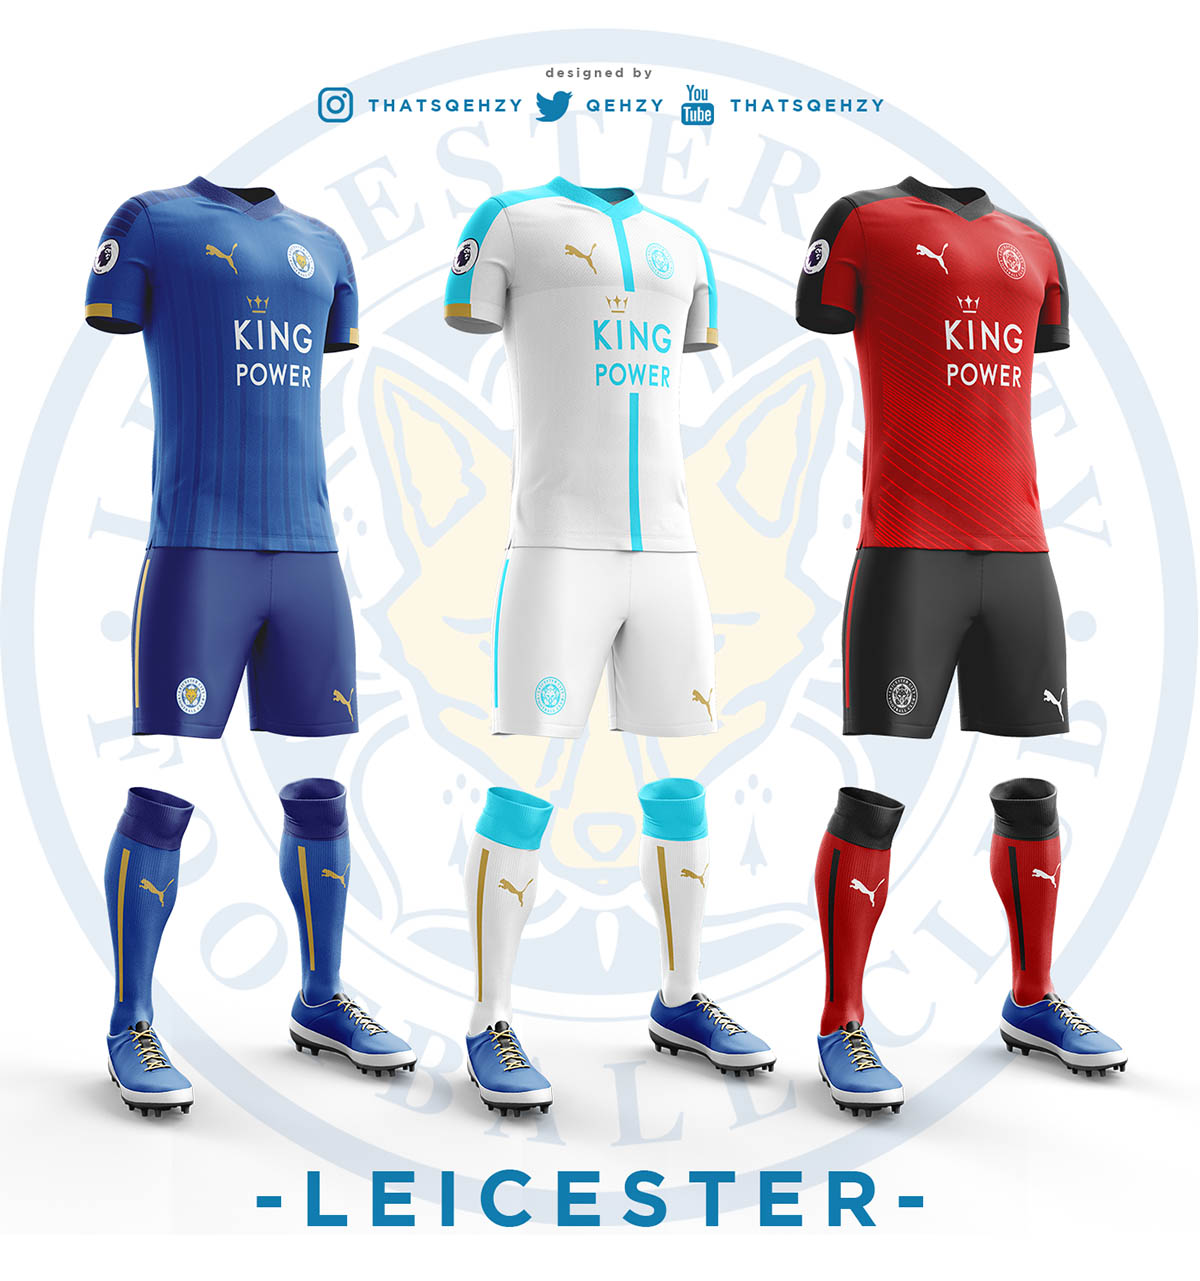 2017-18 Premier League Concept Kits